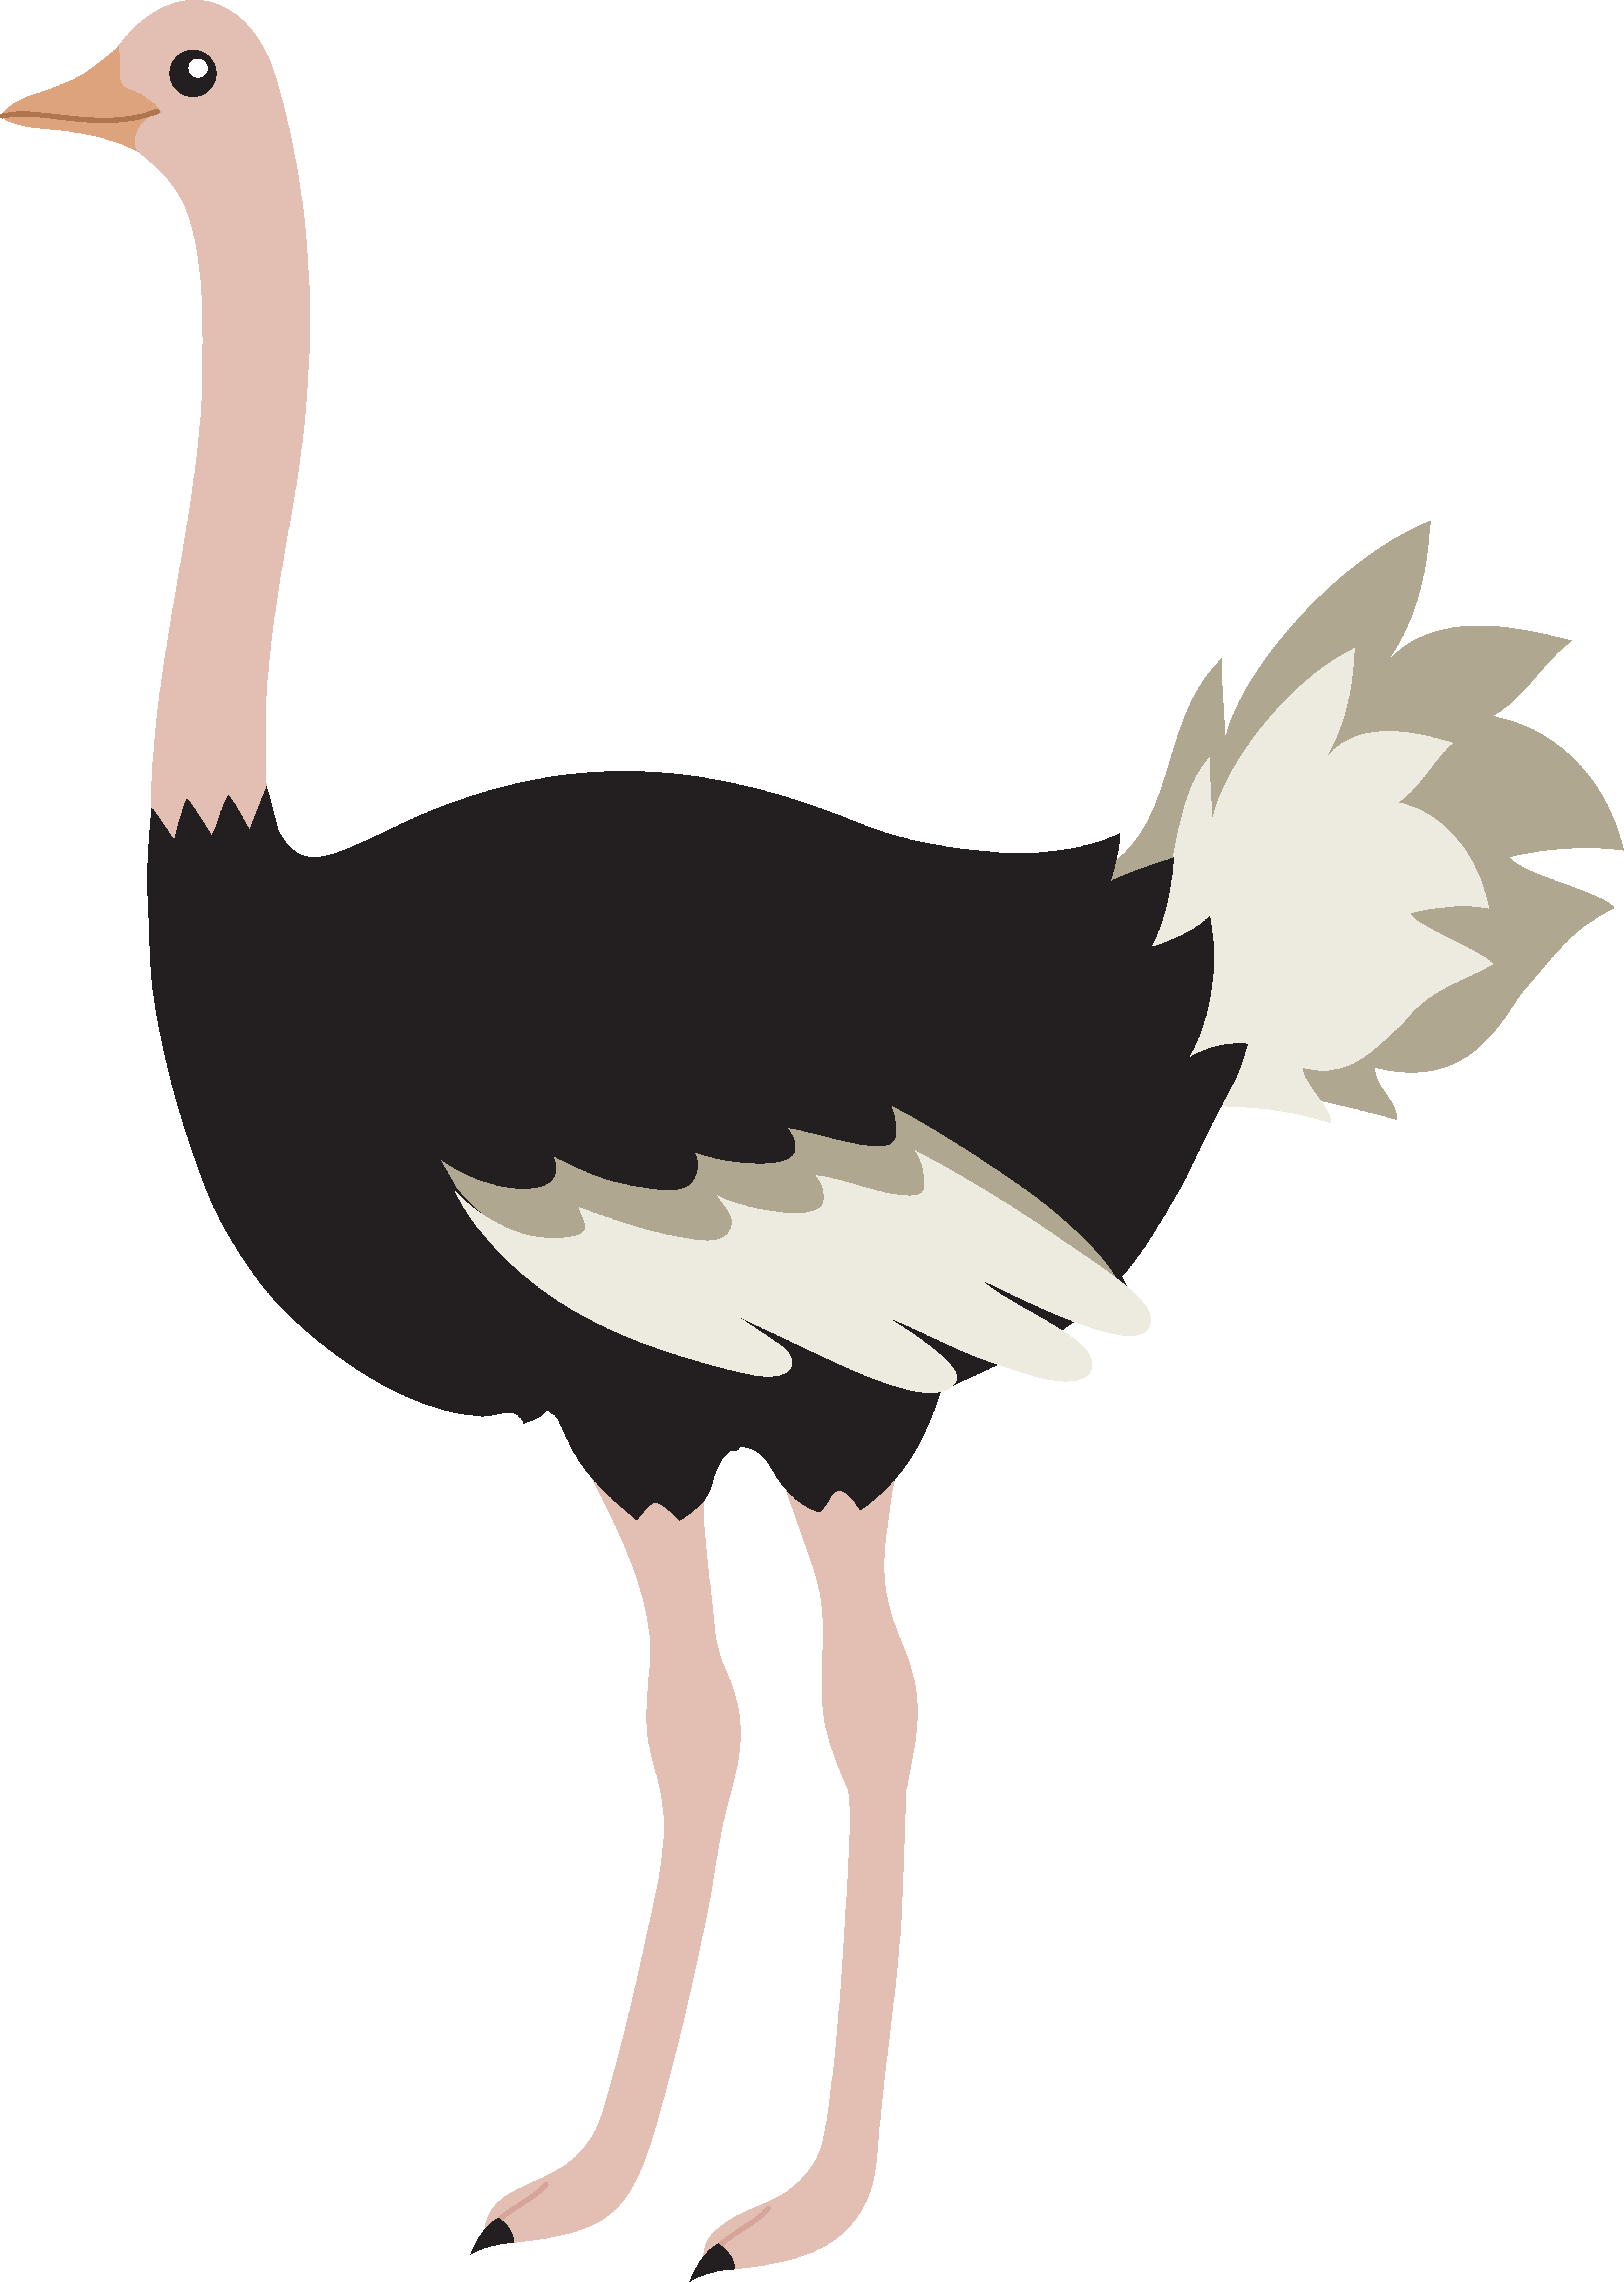 Ostrich clipart cute baby. Cartoon images pictures becuo